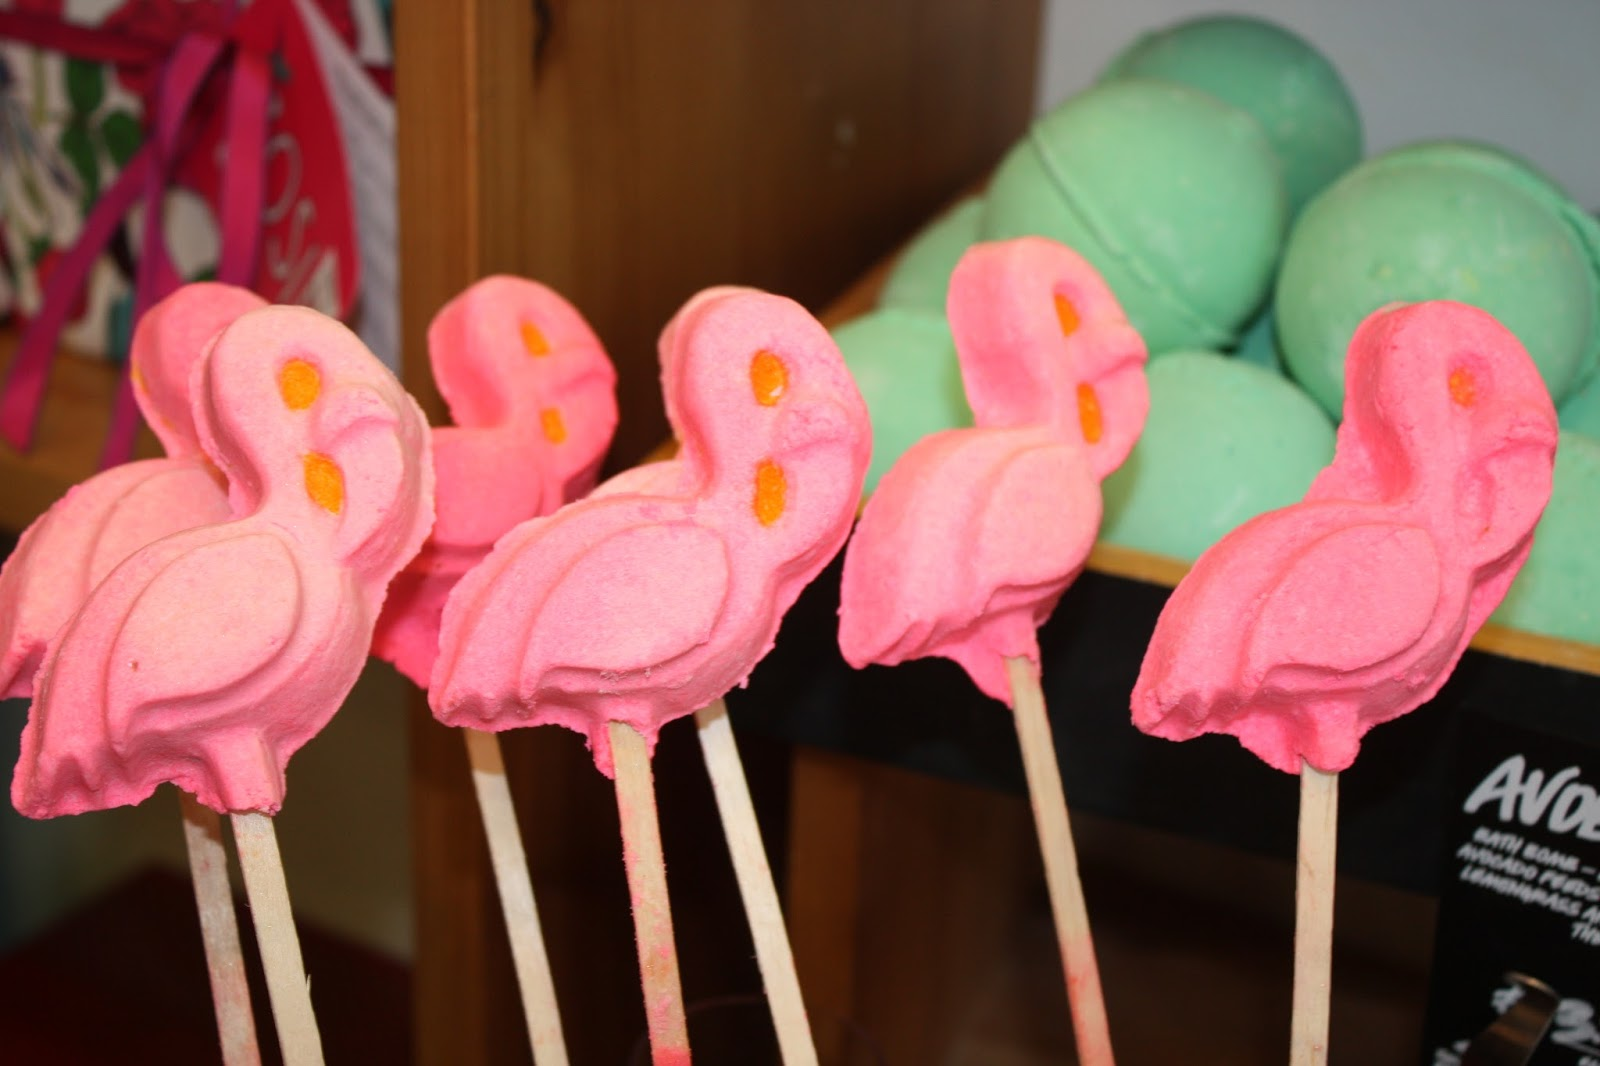 Lush Summer Event Oxford Street Launch Pink Flamingo